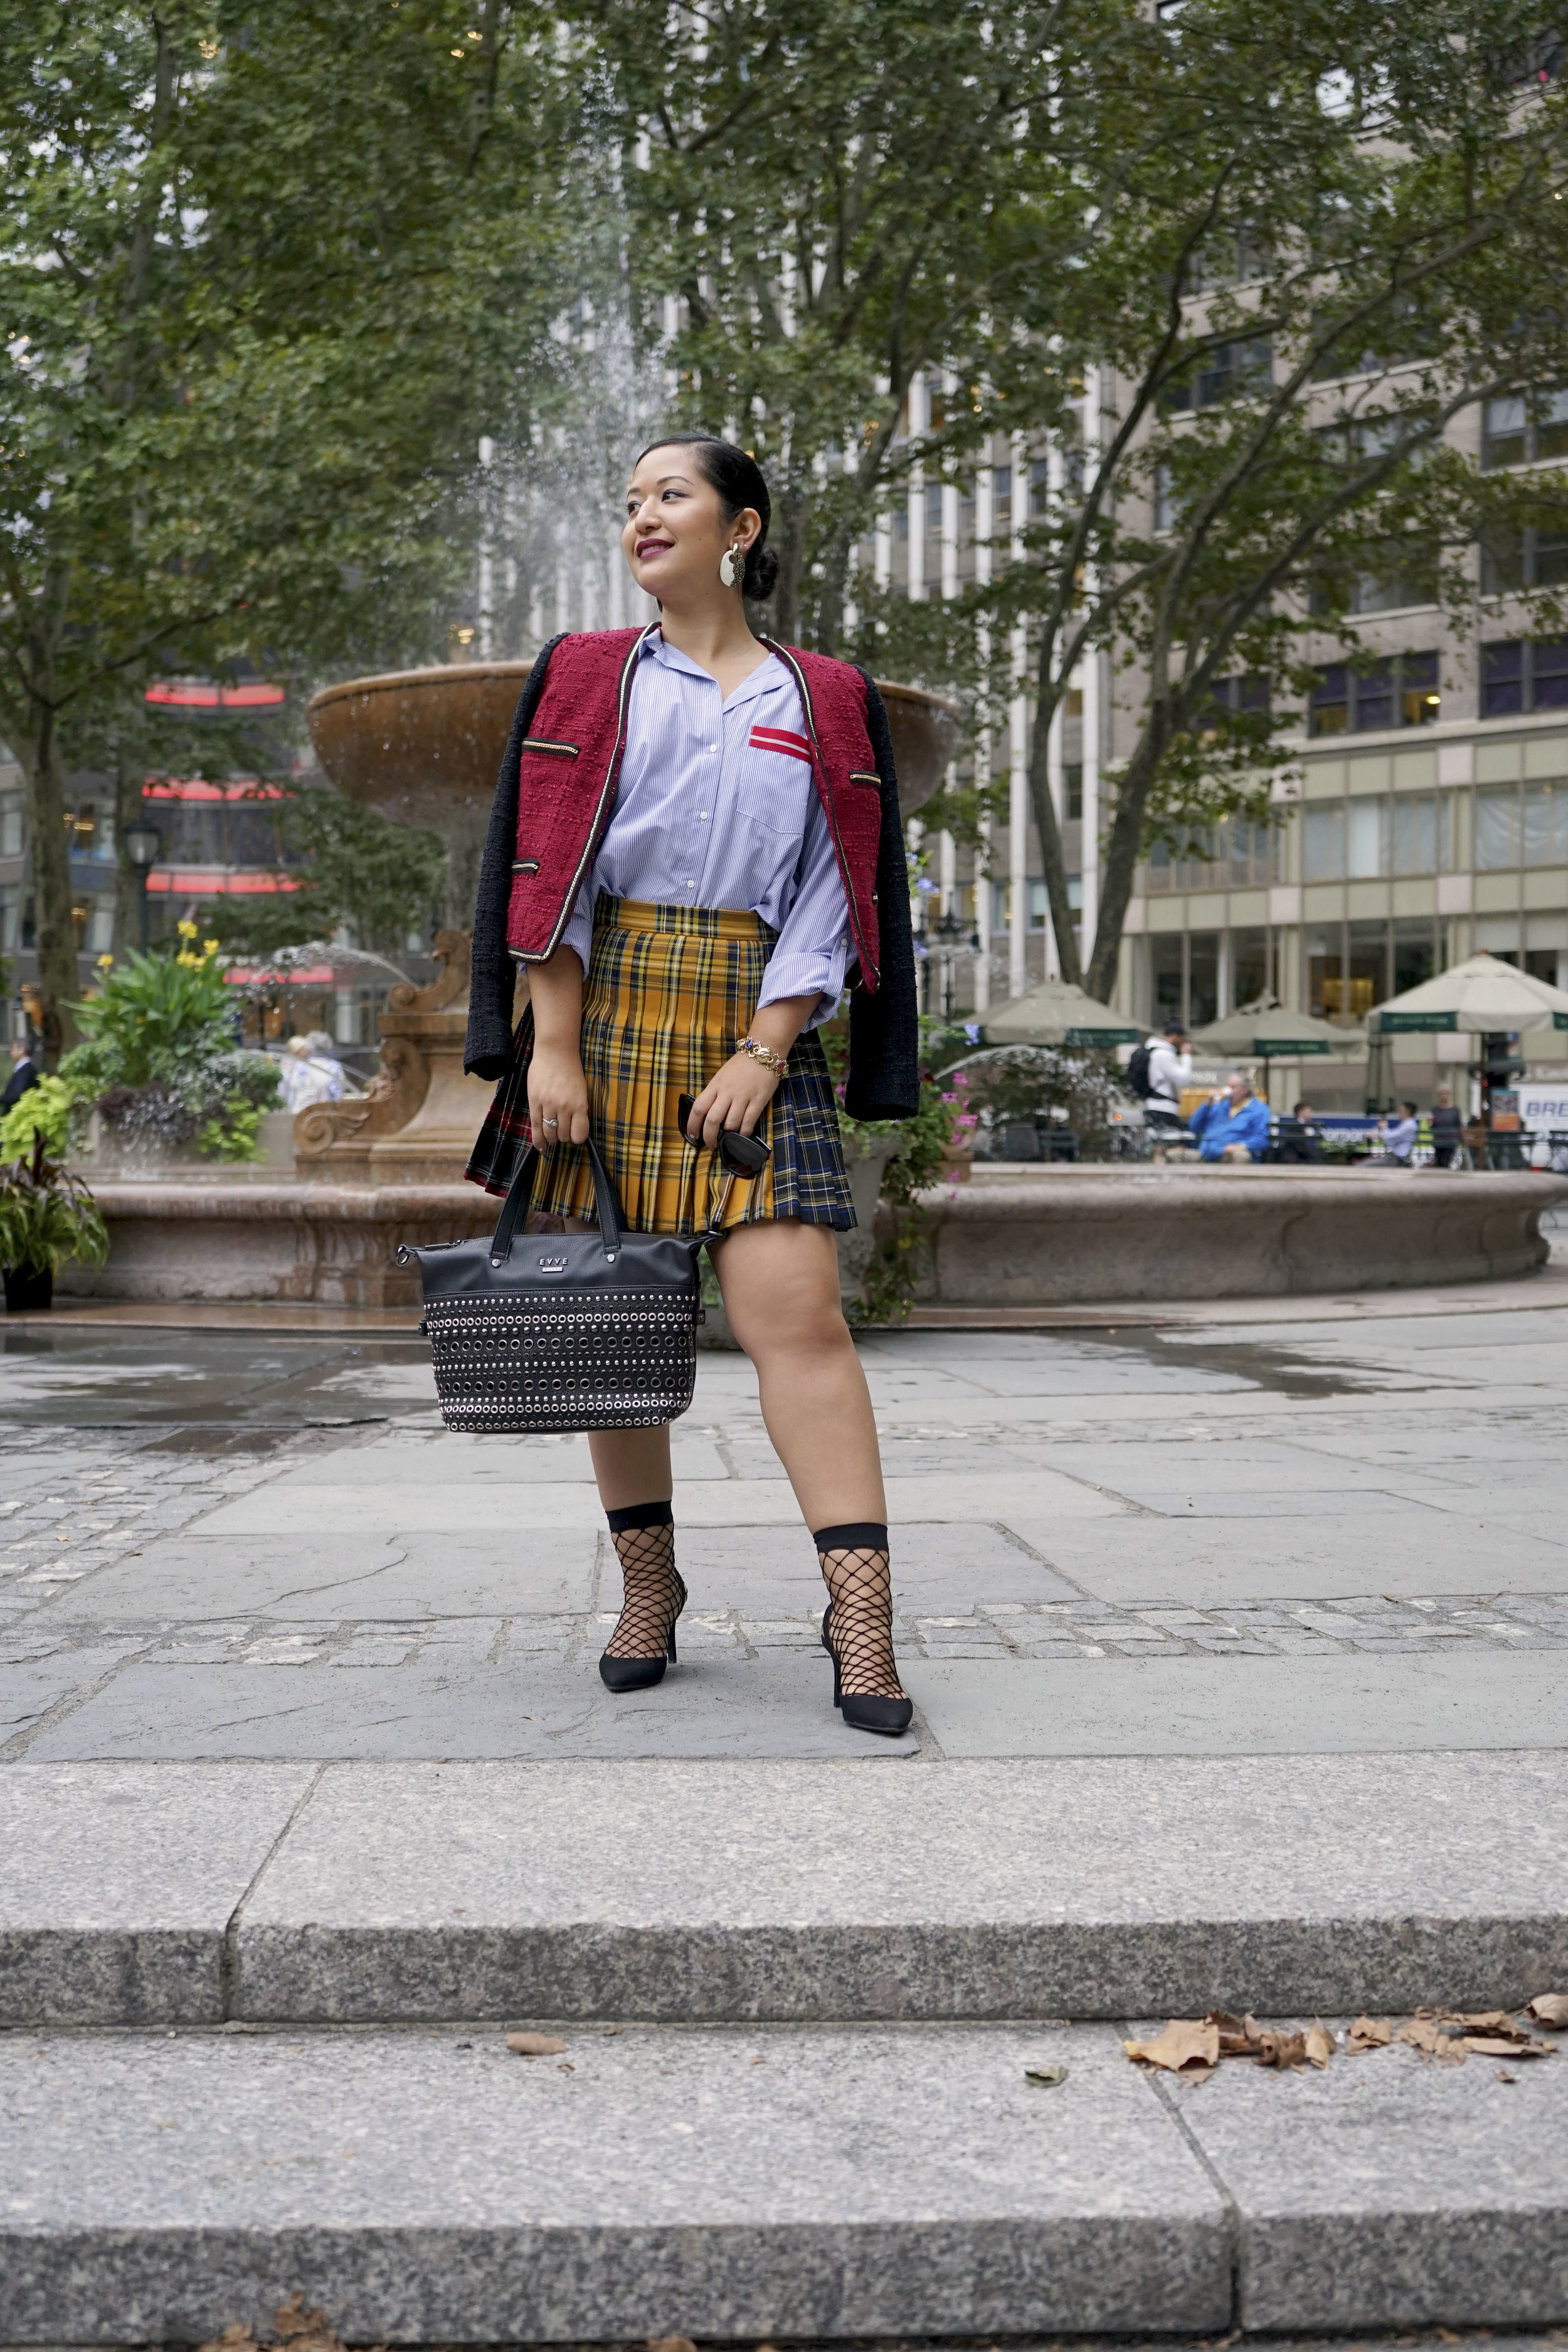 Krity S x Fall Trends x Preppy Plaid 5.jpg